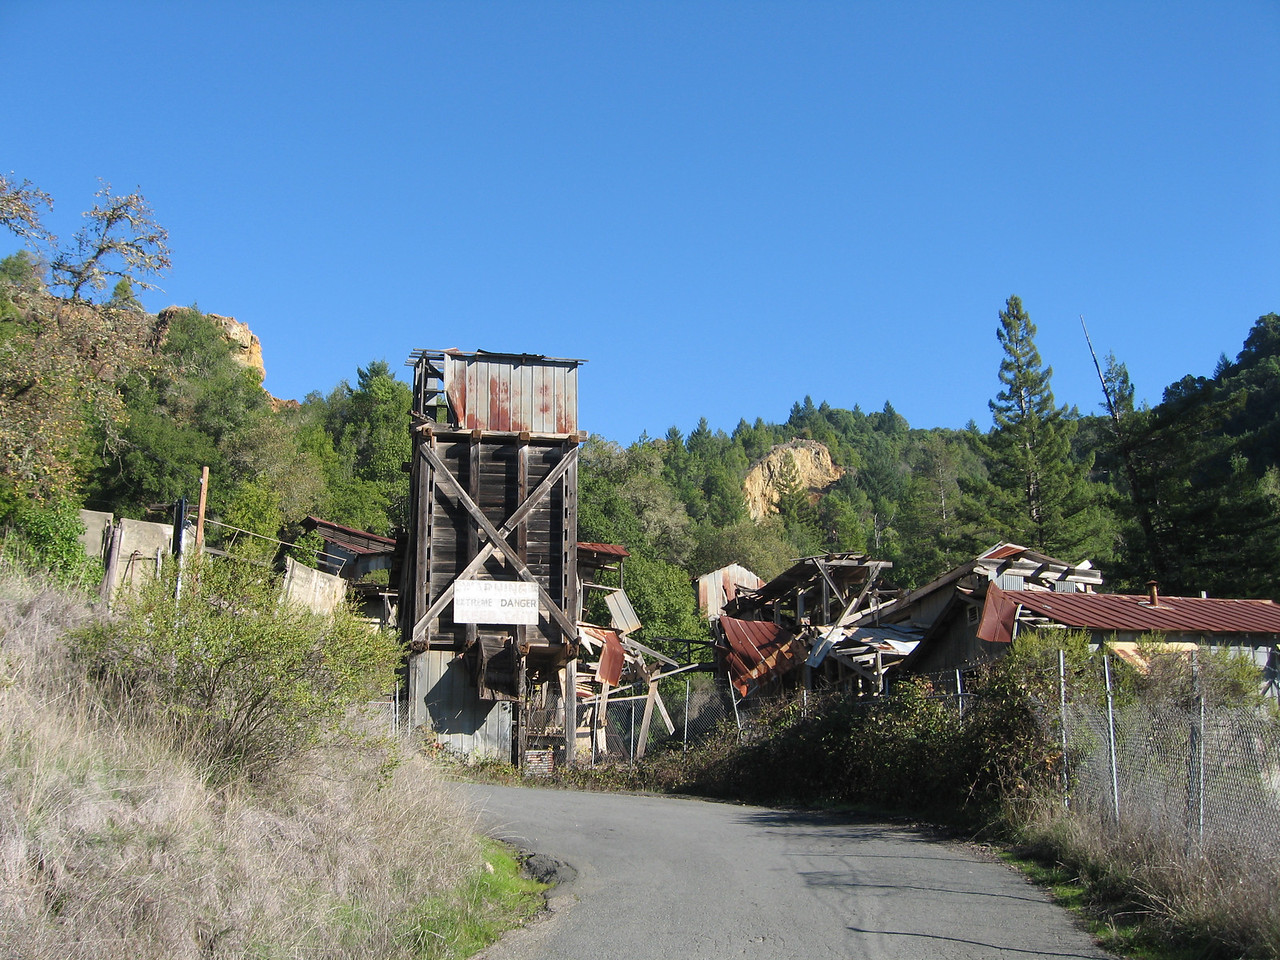 Crazy mine shaft on one of the steep curvy back roads we decided to take.